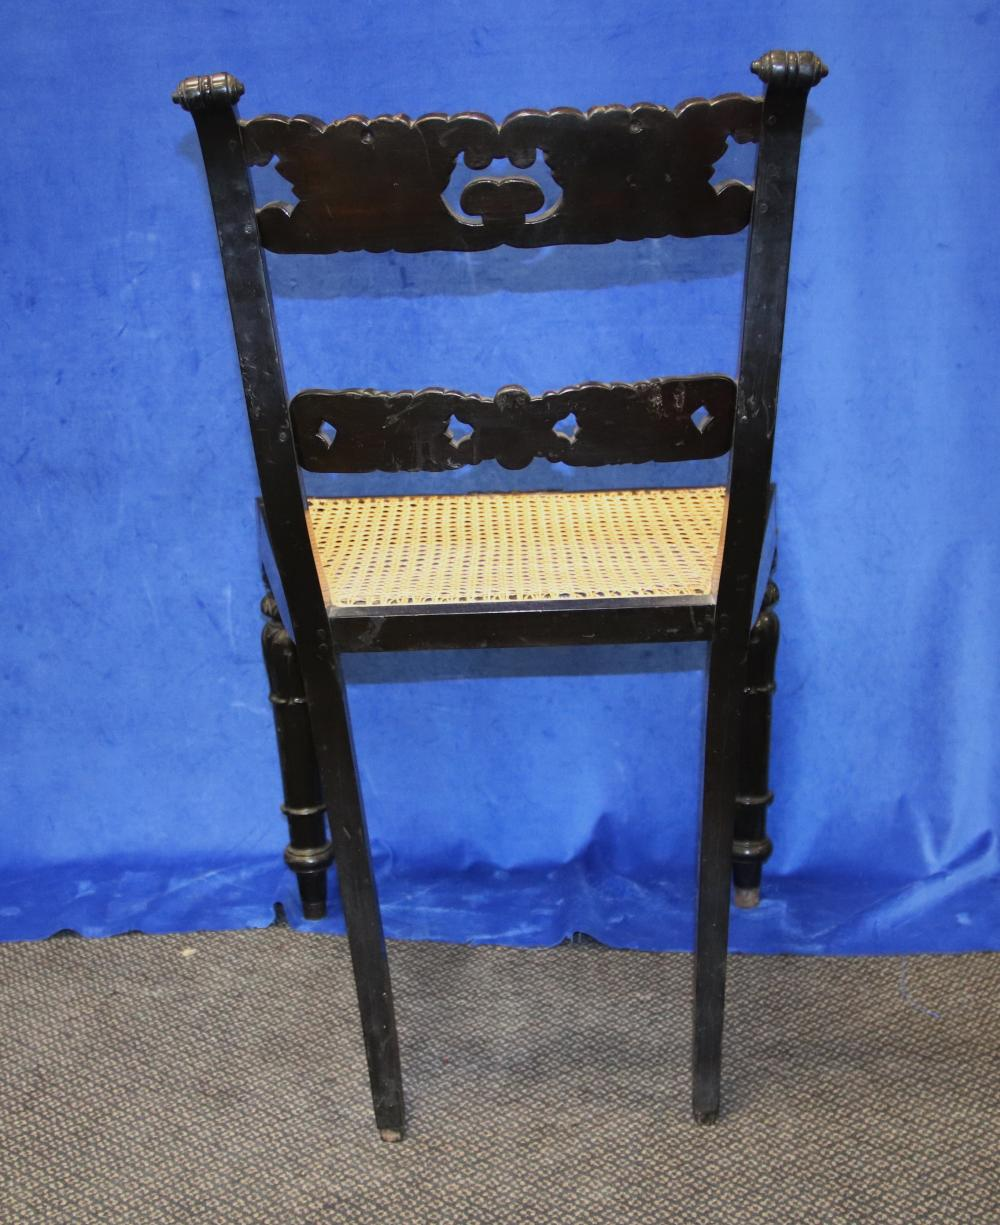 SET OF 6 19TH CENTURY ENGLISH ANGLO- INDIAN CARVED EBONY DINING CHAIRS, CANE SEATED, FINELY CARVED BACKS, STRUCTURALLY SOUND, ONE CANE INSERT HAS MINOR DAMAGE